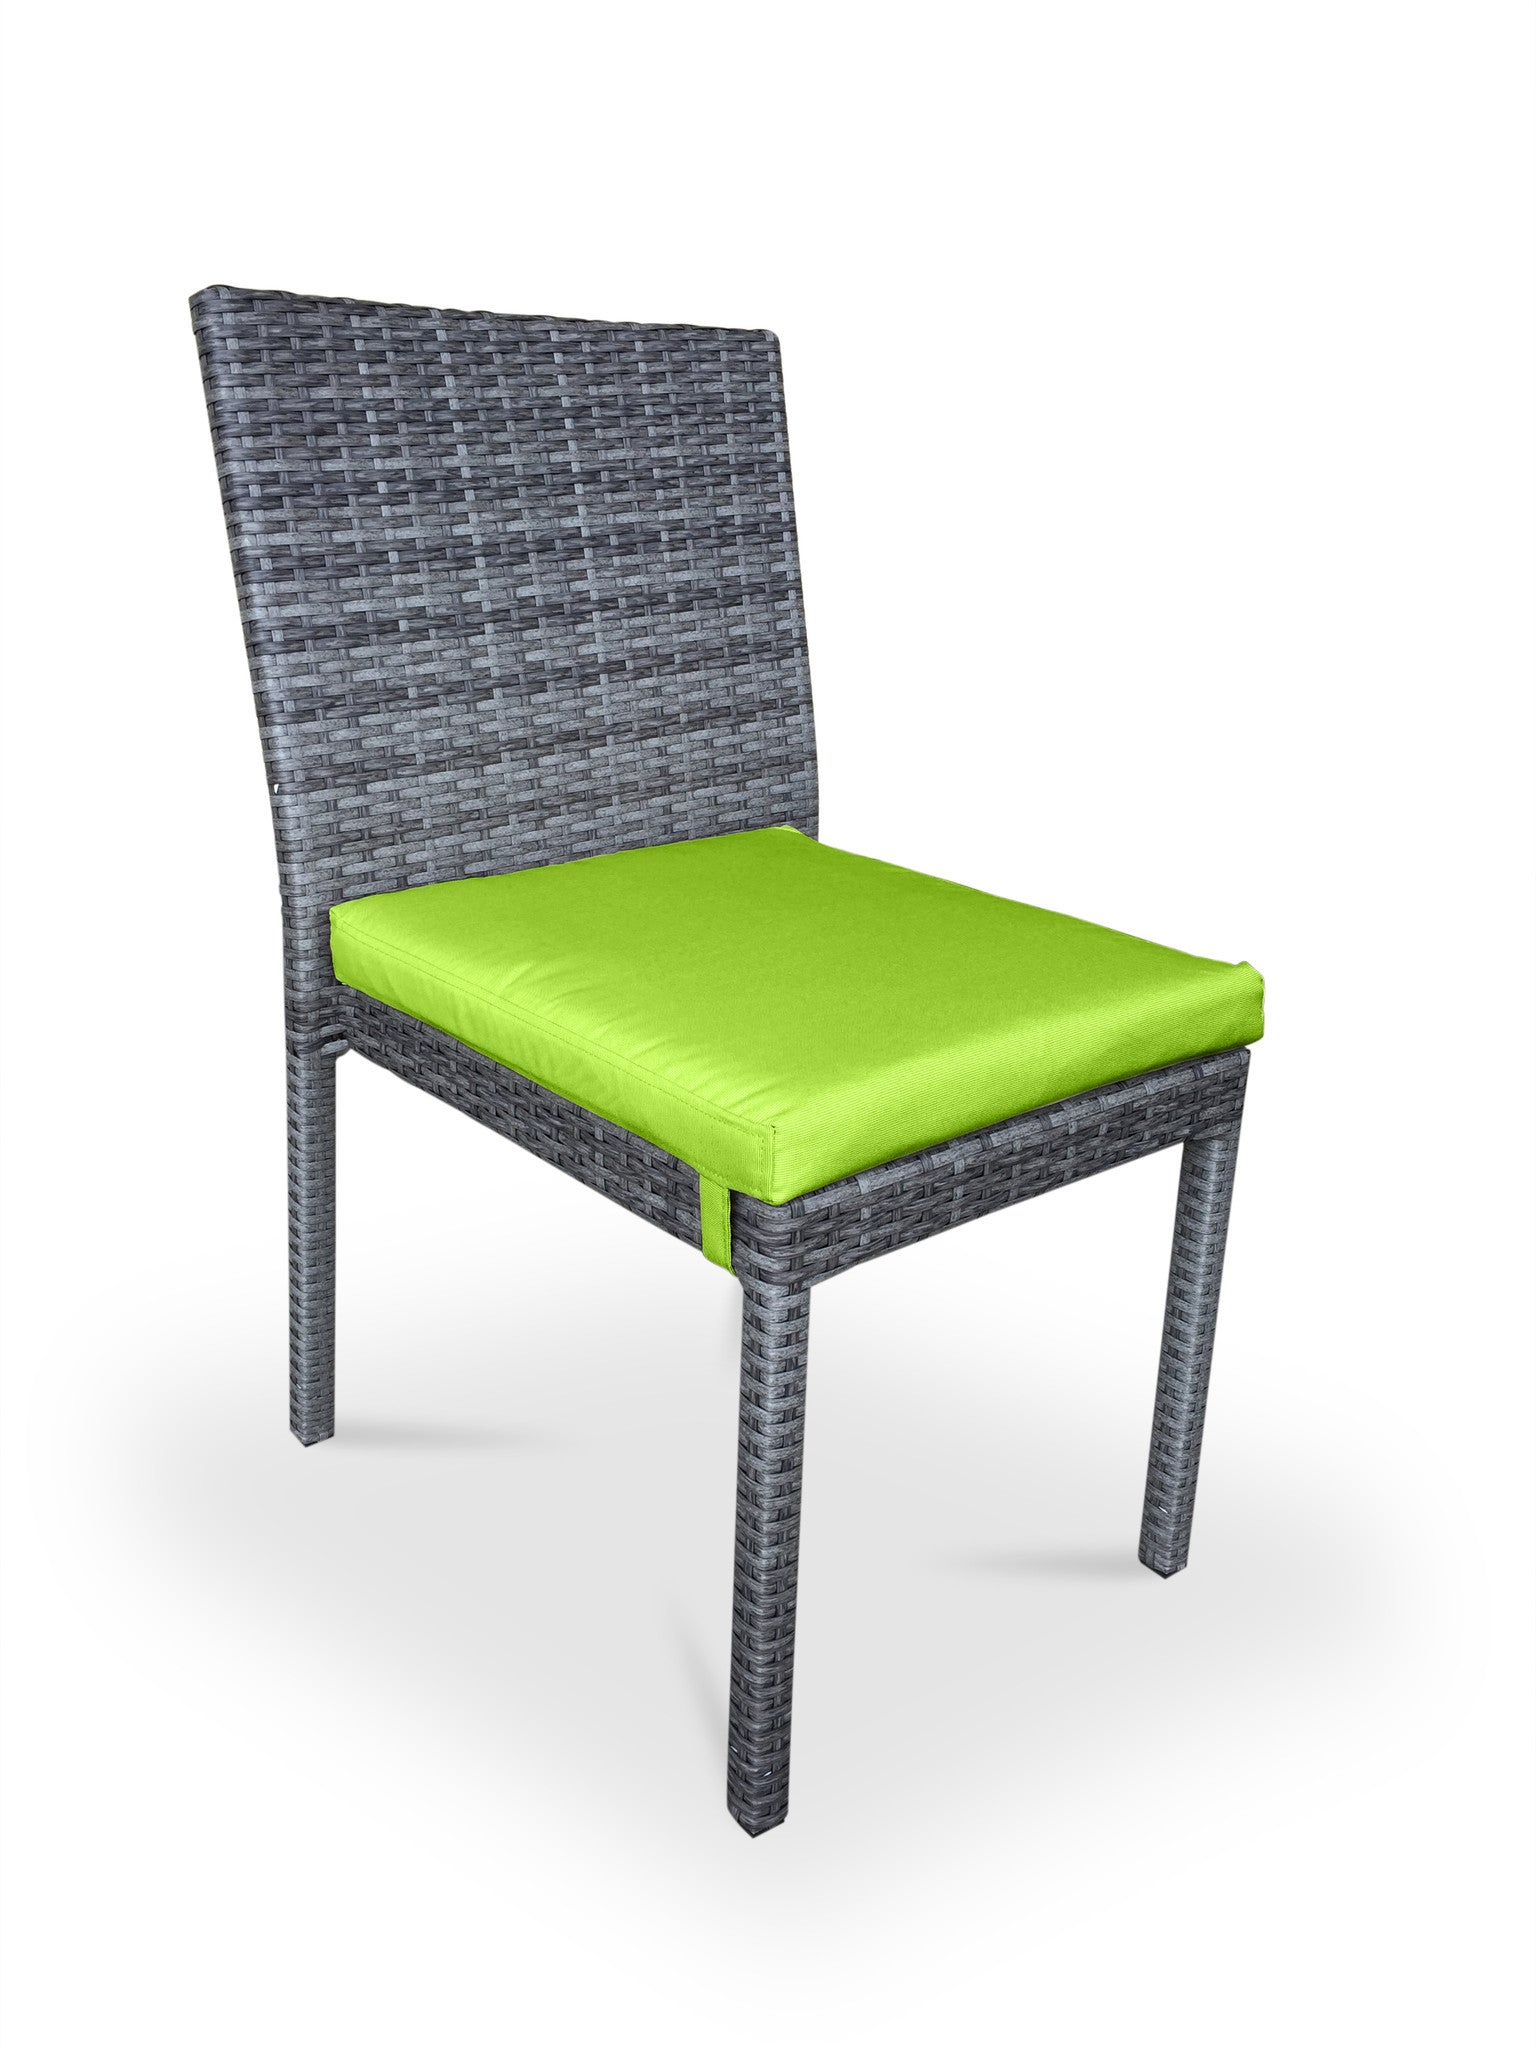 lime green patio furniture. 9 Piece Wicker Outdoor Patio Dining Set - Gray / Lime Green Furniture I